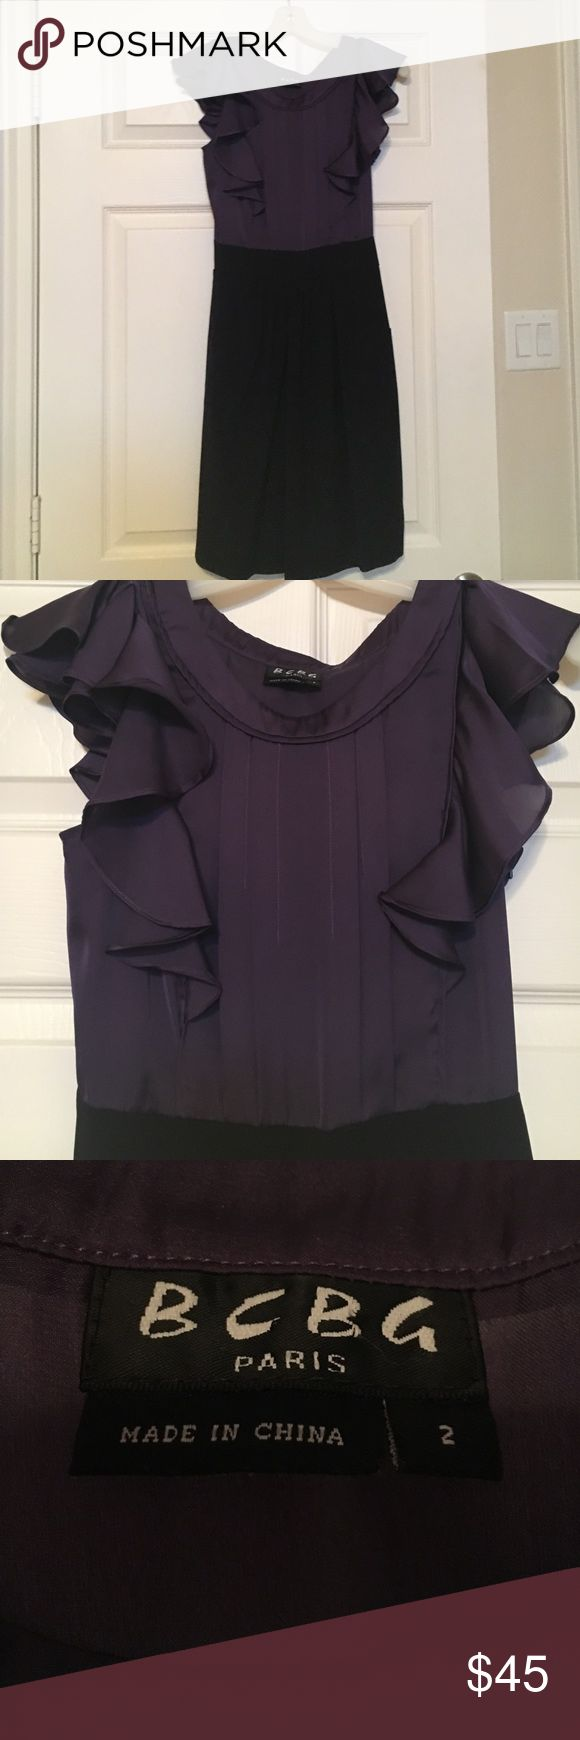 BCBG Purple and Black Dress Purple and black BCBG dress. The top is satin with ruffled sleeves. The bottoms is slightly pleated in front and has pockets! BCBG Dresses Mini